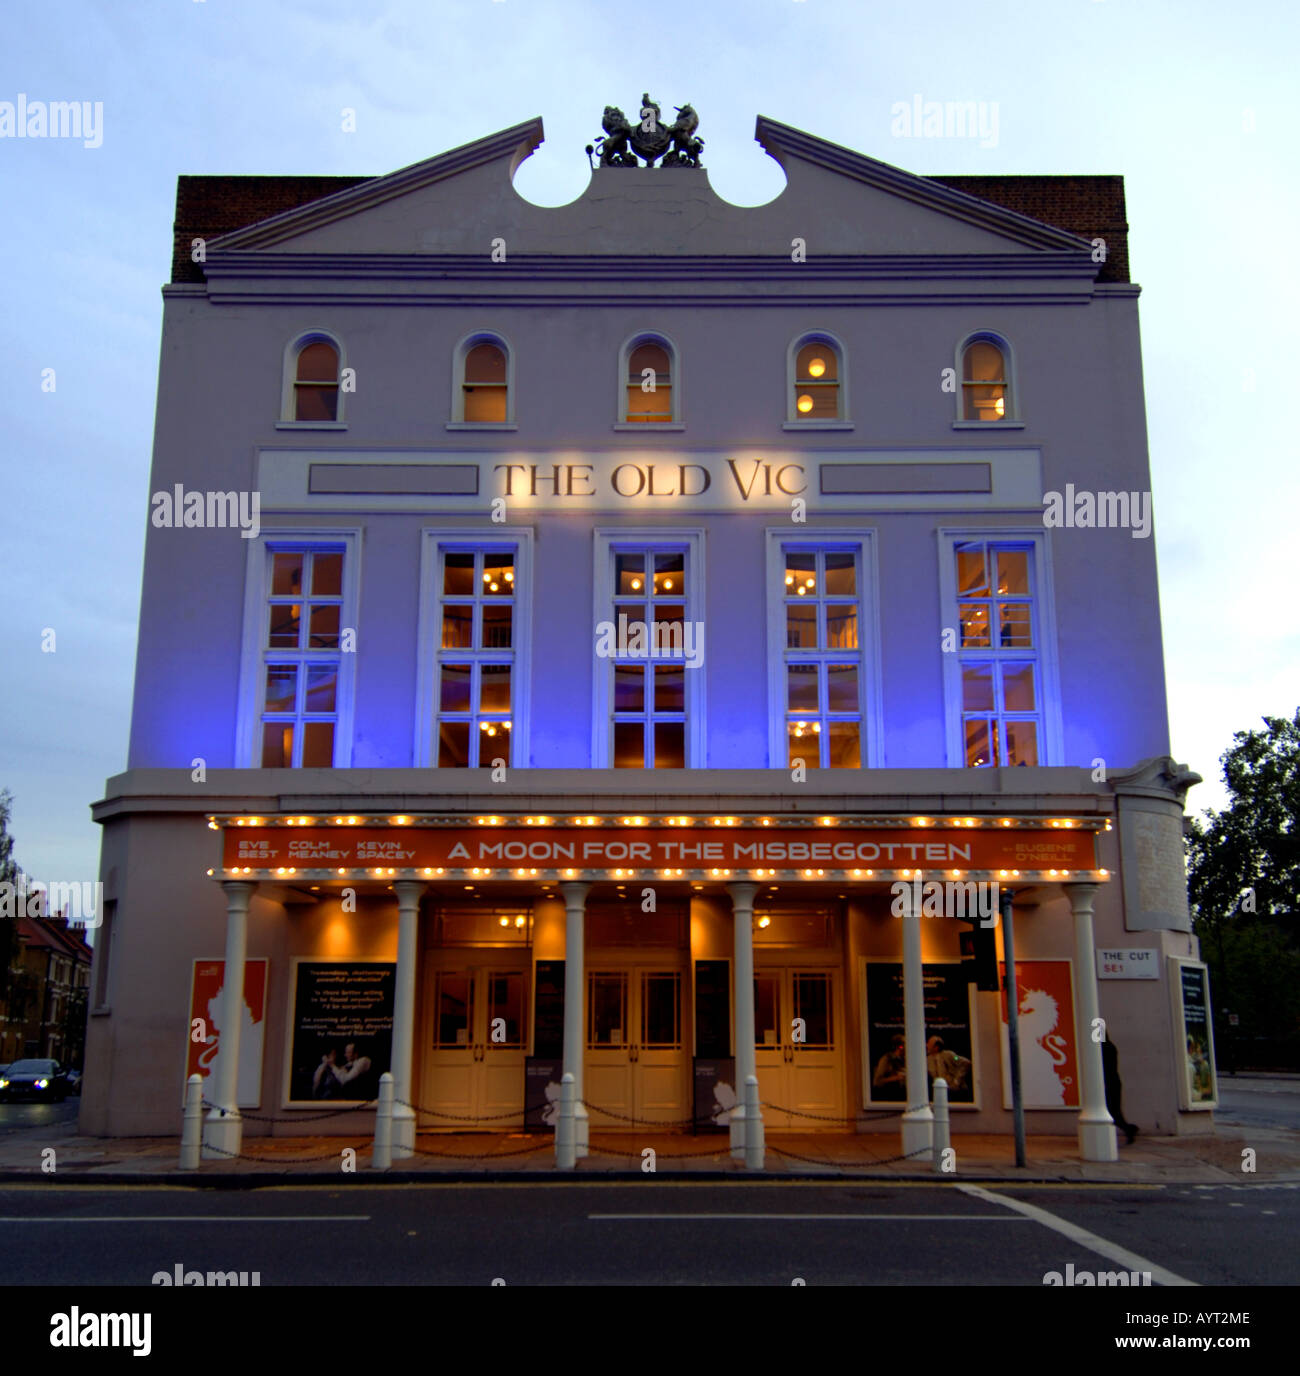 The Old Vic theatre, Waterloo, London, UK - Stock Image